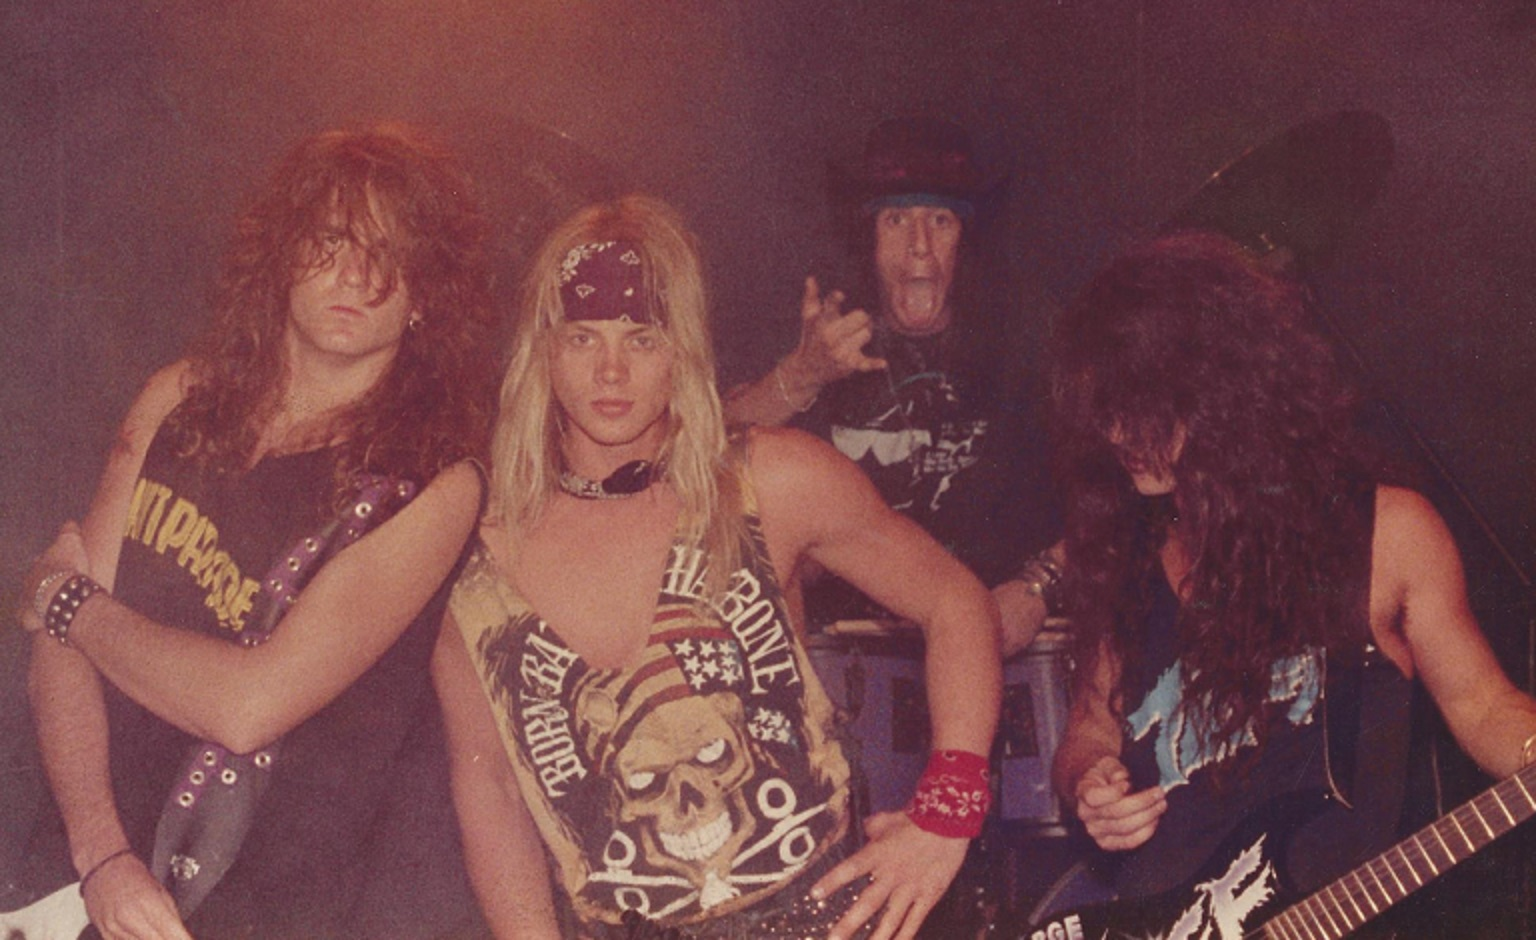 TUFF DIARIES #11 … Hello 1990, Texas Strippers, Hells Angels, the